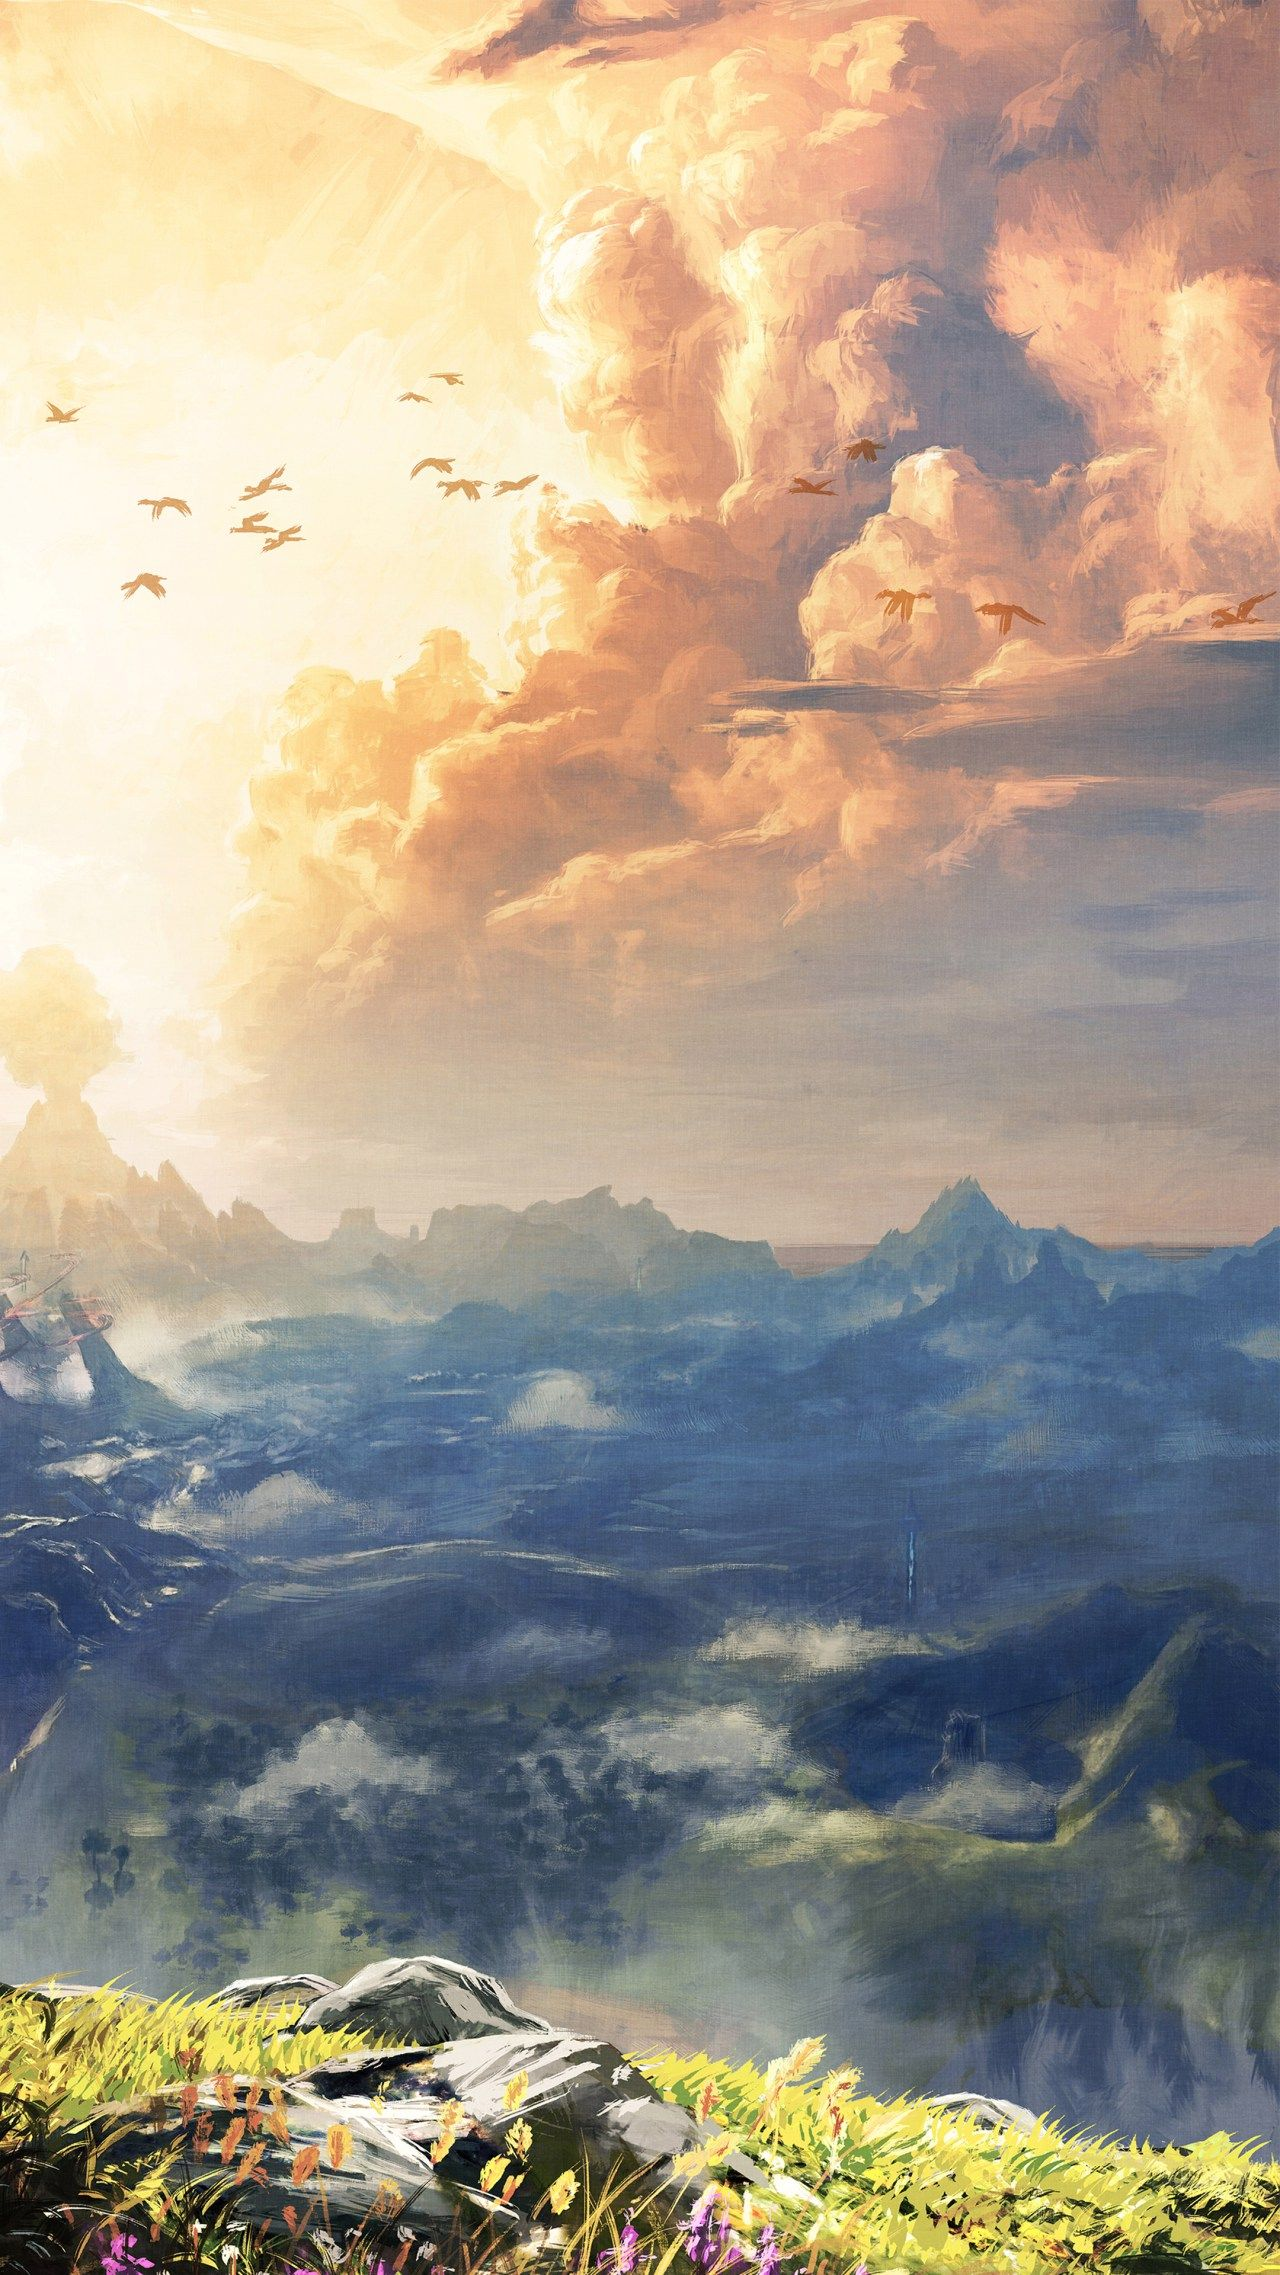 The Legend Of Zelda Breath Of The Wild Wallpapers Breath Of The